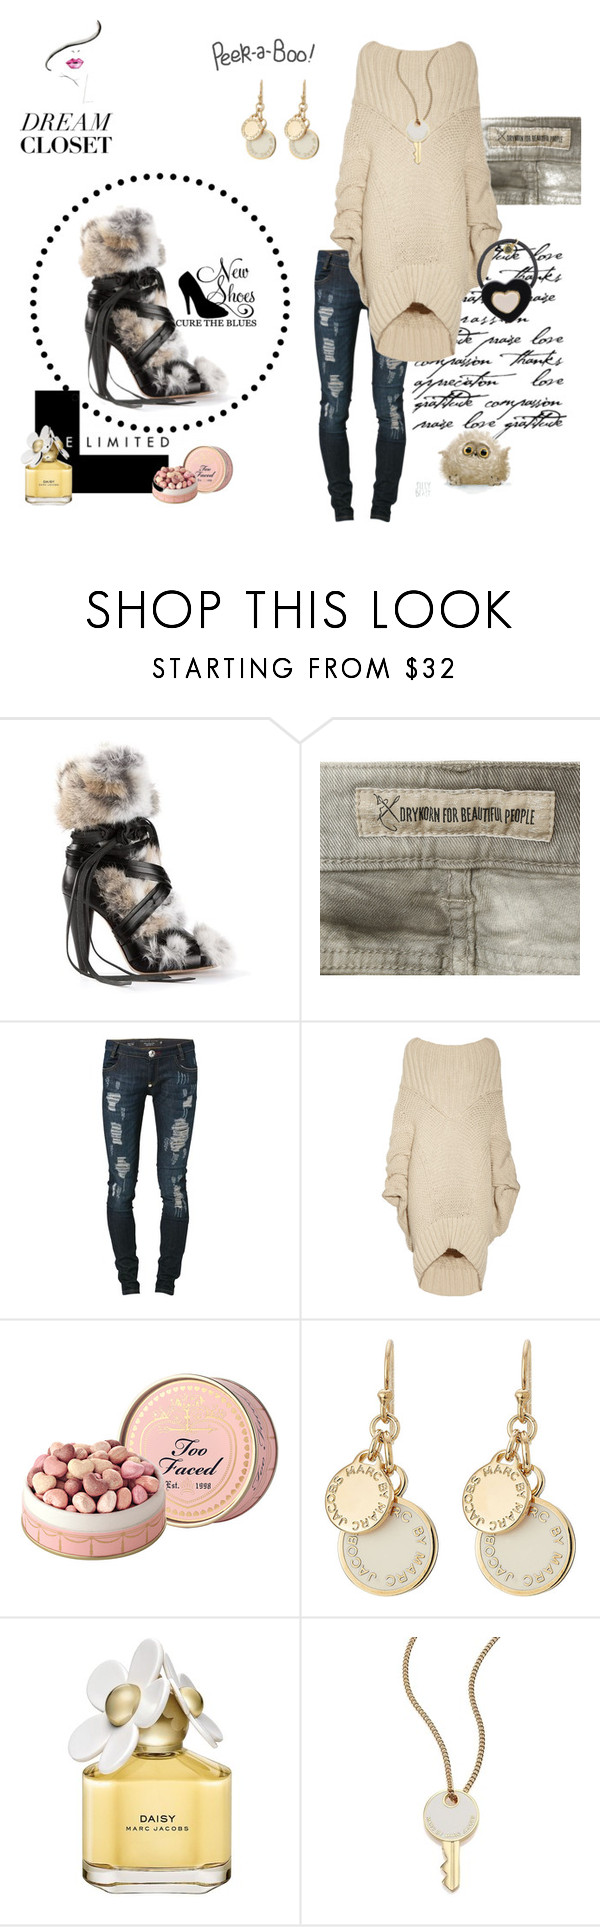 """Private wardrobe peek: my favorite winter boots❤️"" by juliabachmann ❤ liked on Polyvore featuring mode, Peek, Isabel Marant, Drykorn, Philipp Plein, Donna Karan, Marc by Marc Jacobs en Marc Jacobs"